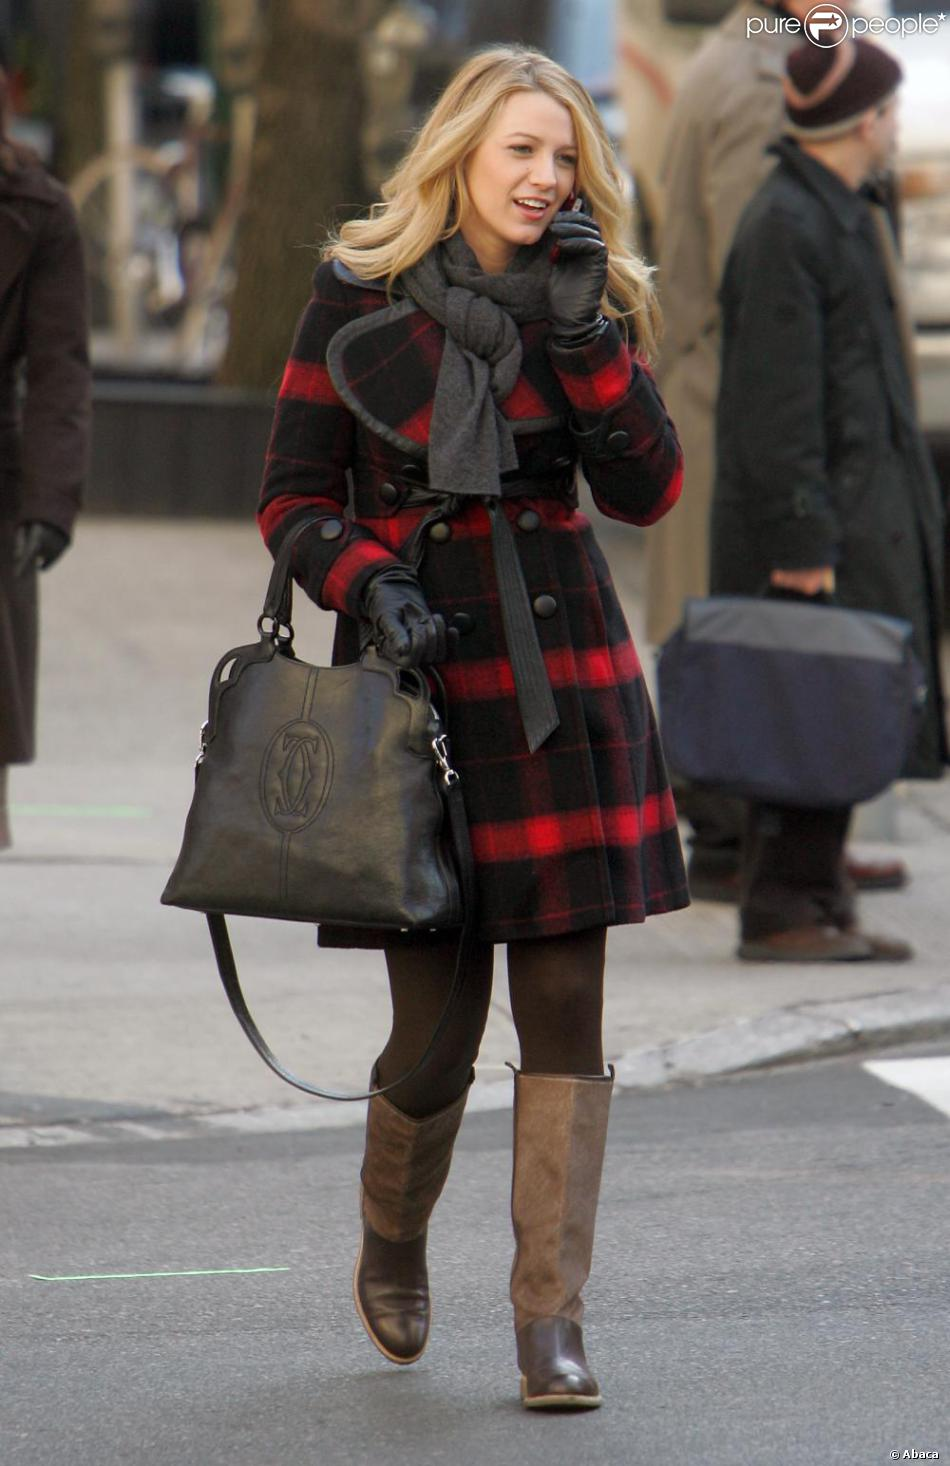 http://static1.purepeople.com/articles/9/69/67/9/@/524680-blake-lively-a-craque-pour-le-manteau-950x0-3.jpg